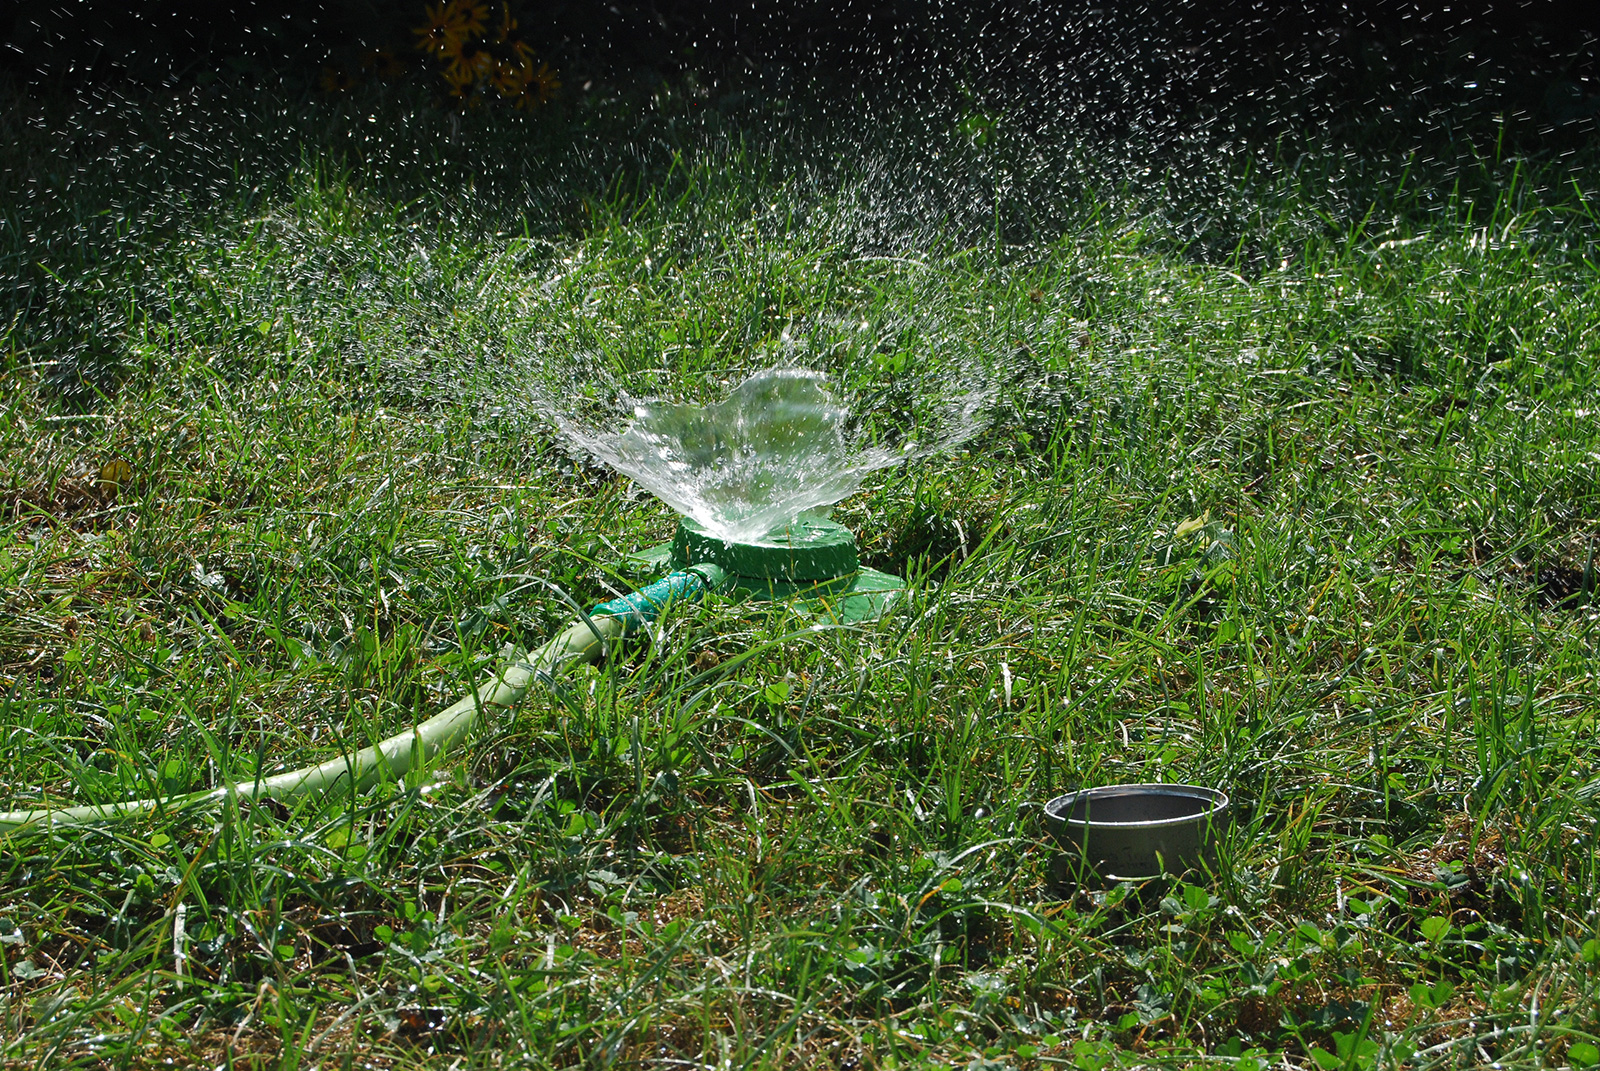 Sprinkler on lawn with tuna can in foreground